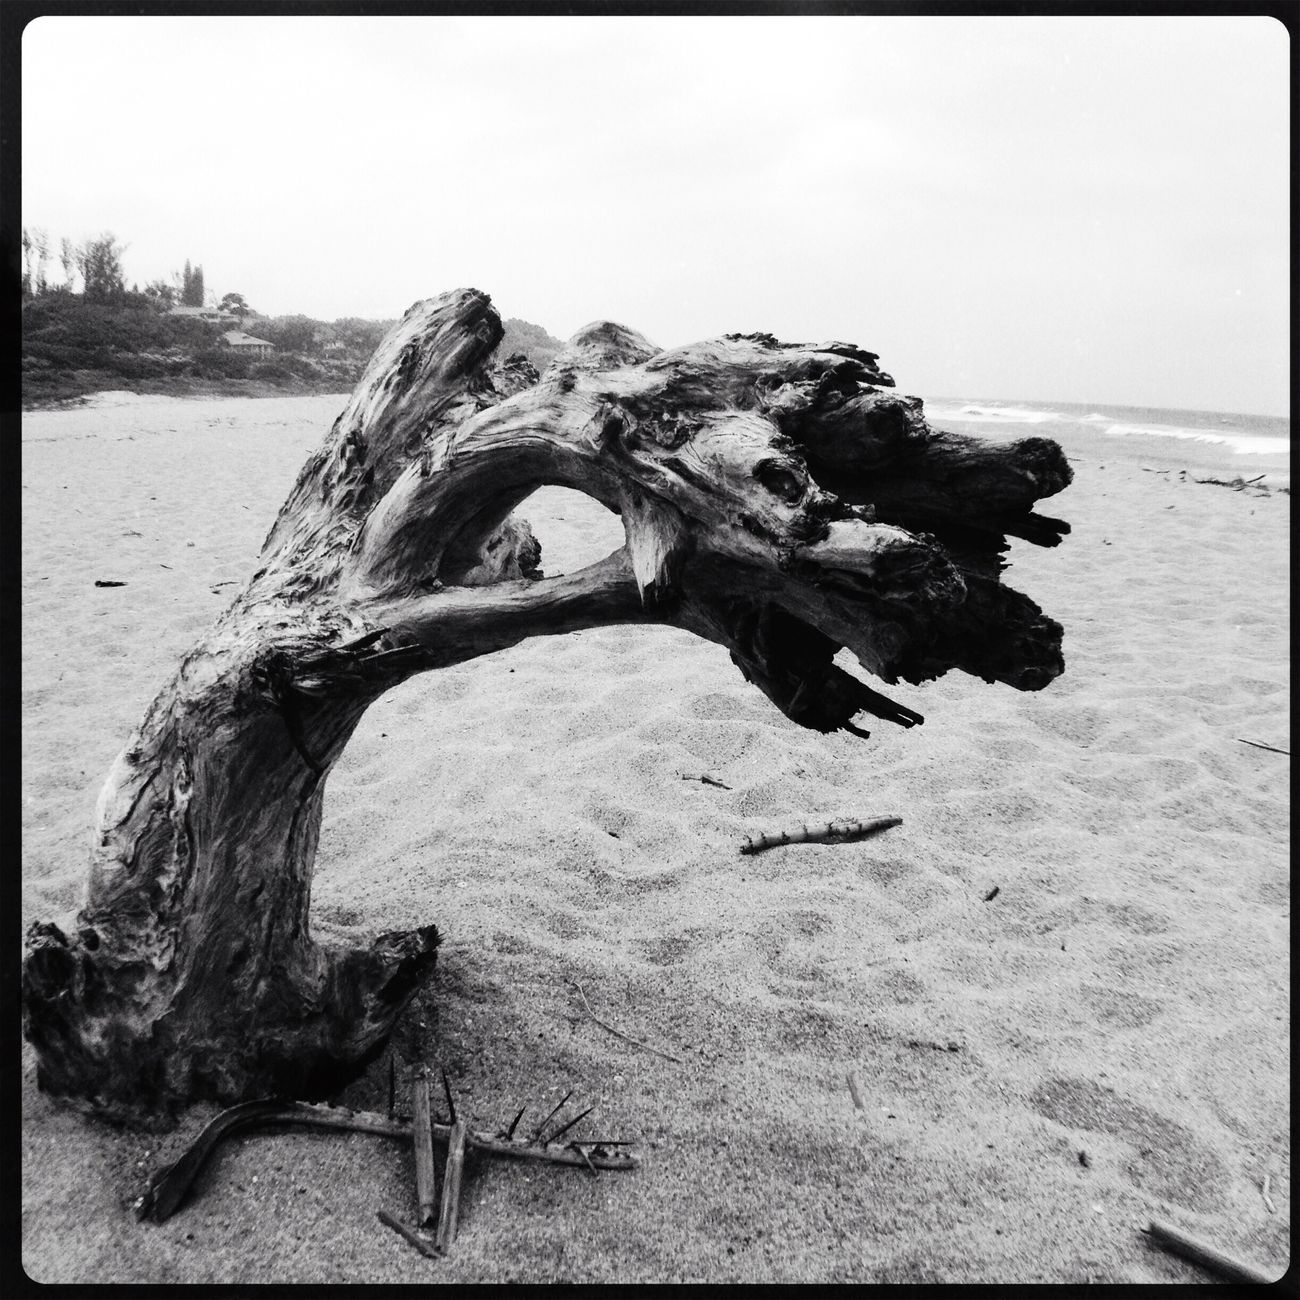 Beach EyeEm Best Shots EyeEm Nature Lover Blackandwhite Bw_collection